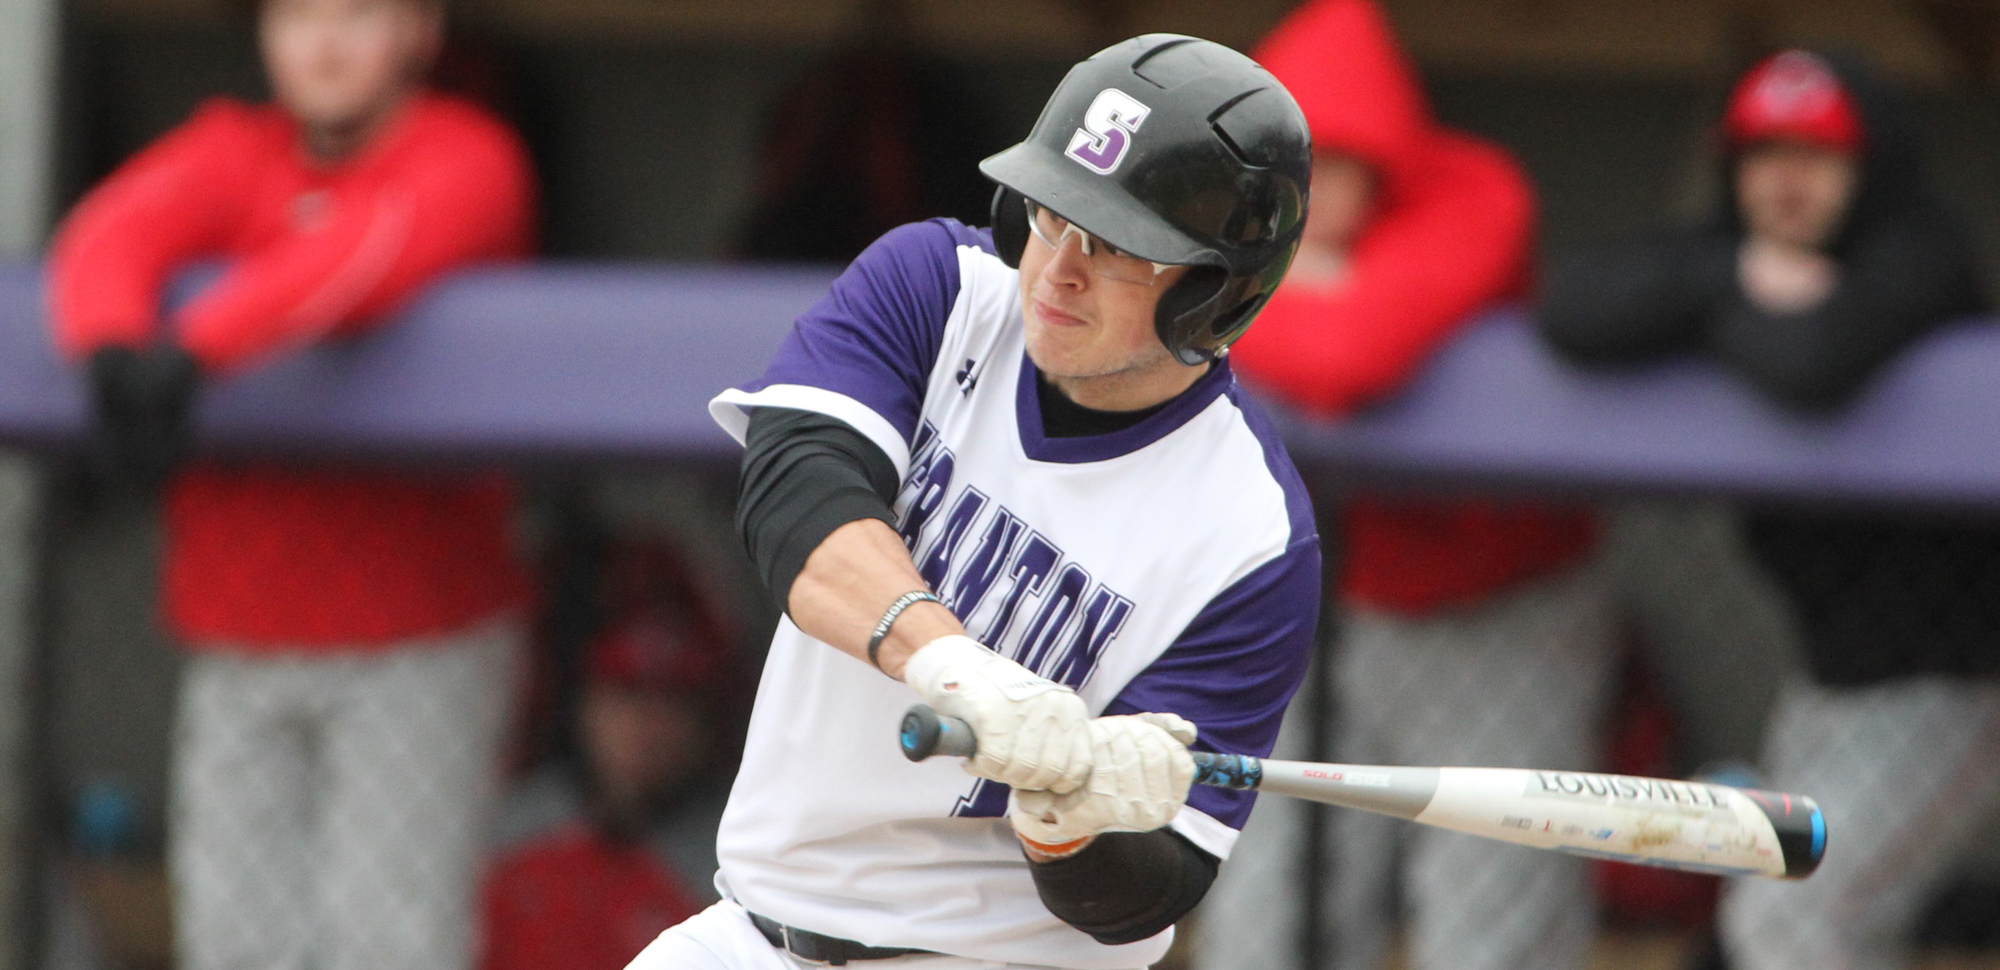 Junior Kevin Haag went 3-for-6 with two doubles and four RBI in Scranton's loss to Montclair State on Sunday. © Photo by Timothy R. Dougherty / doubleeaglephotography.com